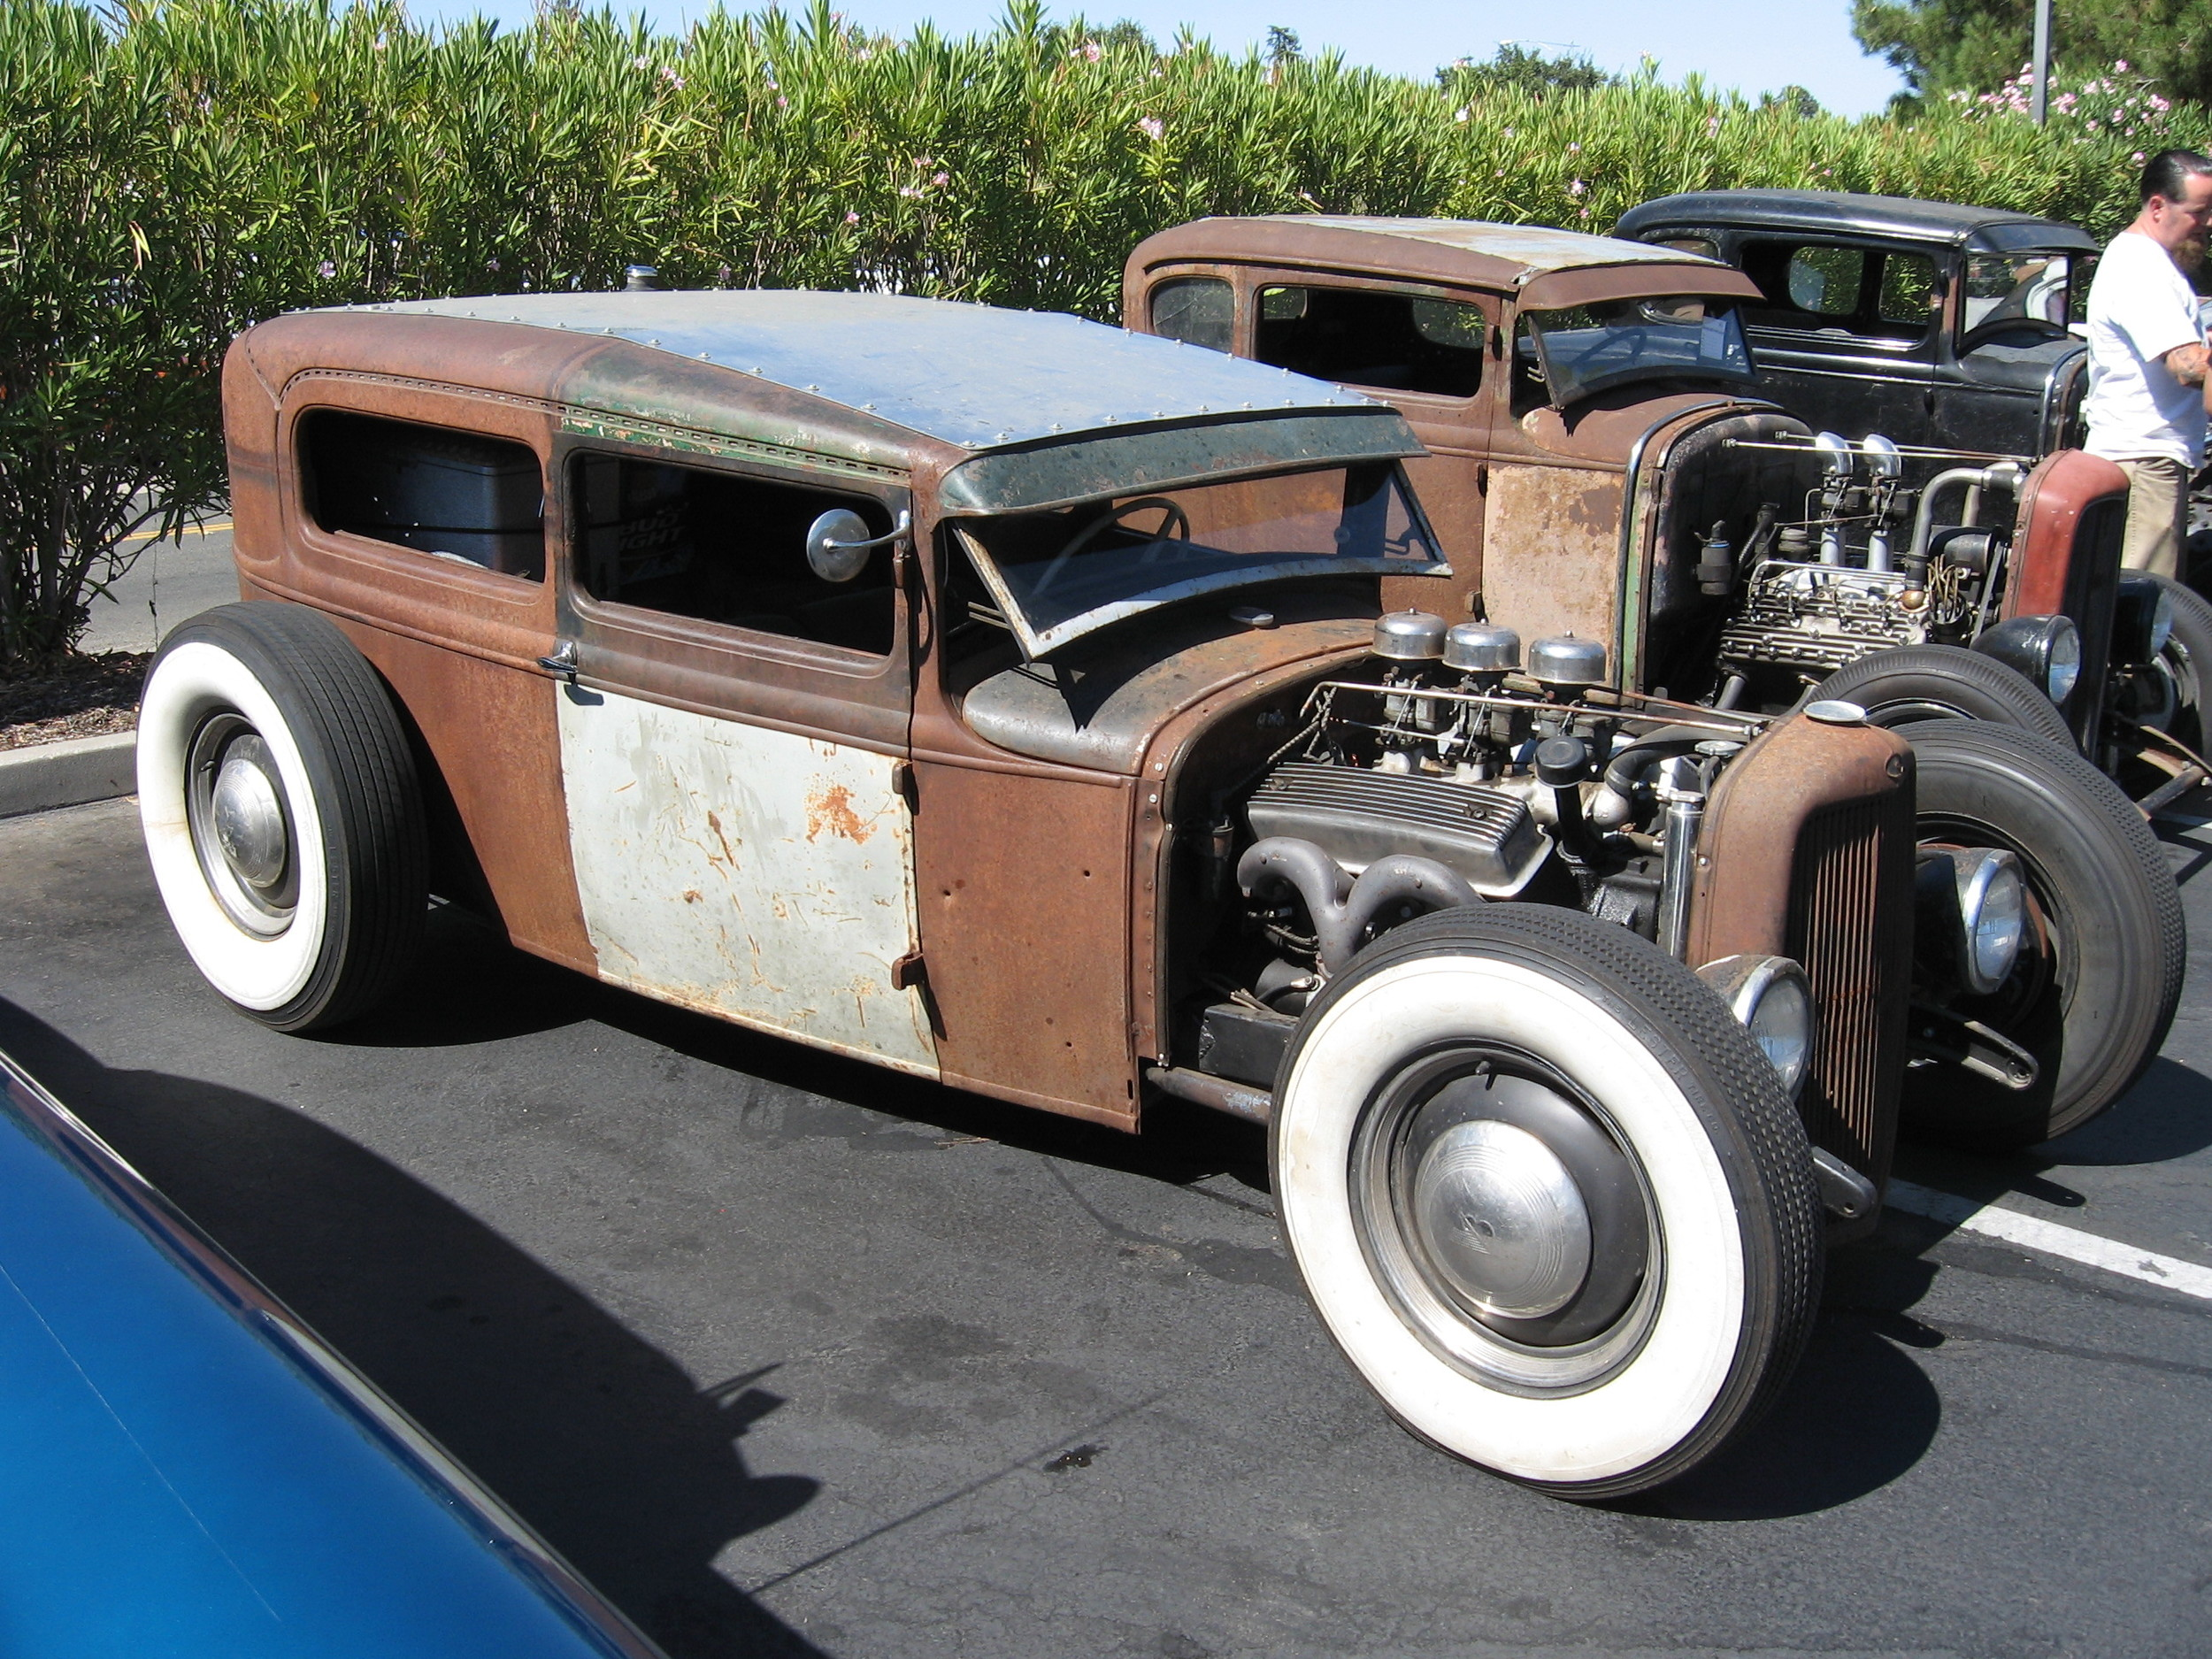 Typical Rat Rods